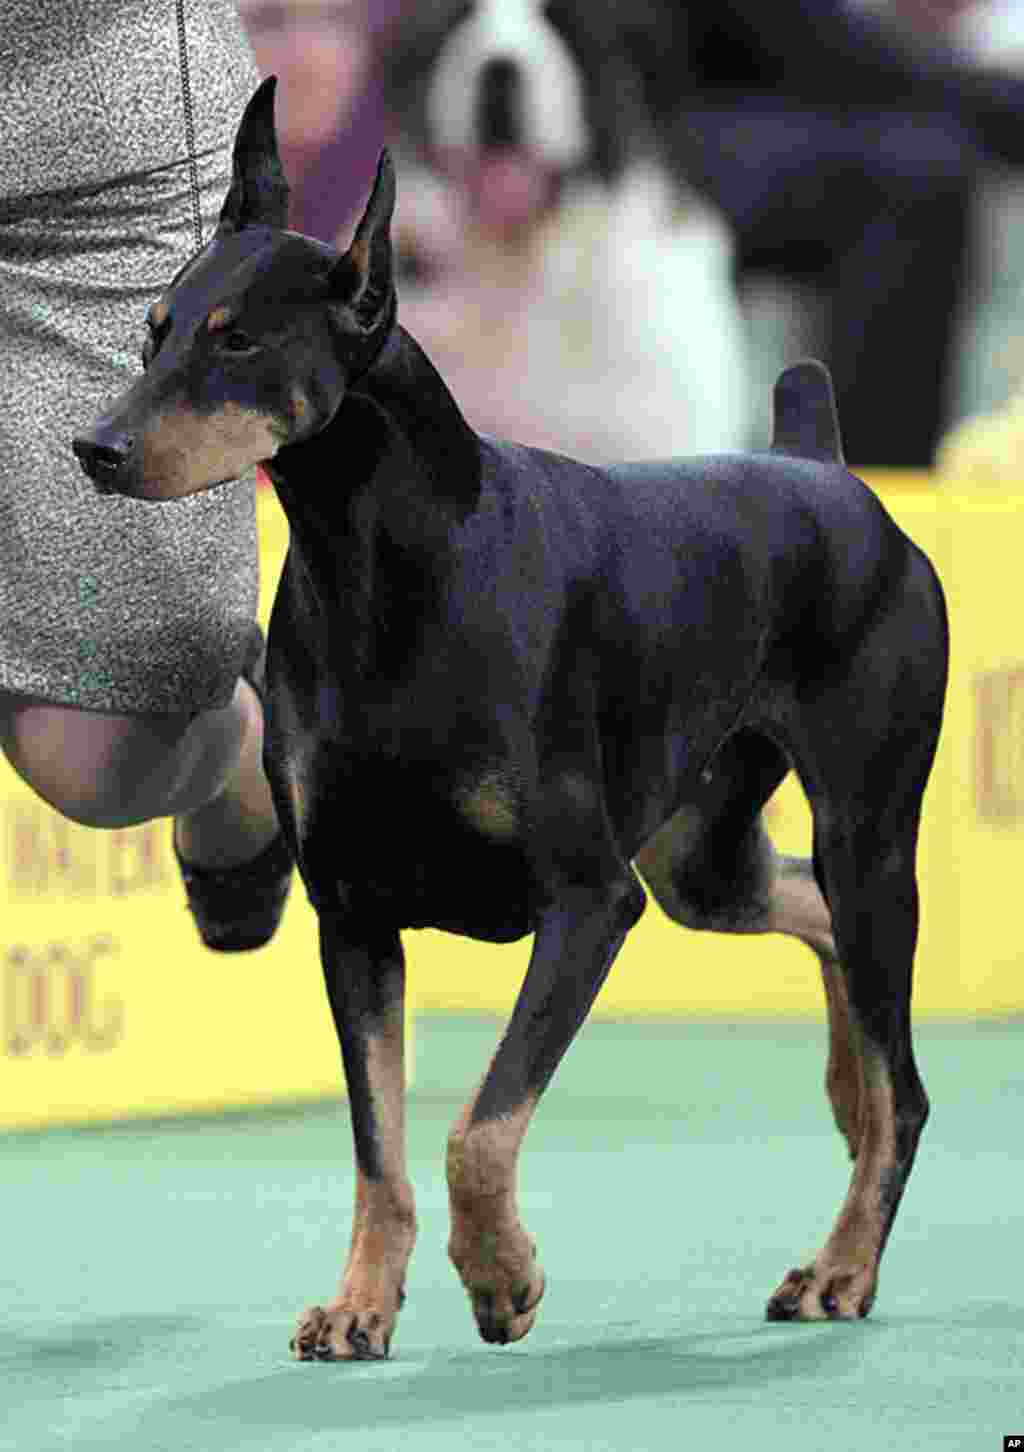 Protocol's Veni Vidi Vici, a Doberman Pinscher, who won its group at the Westminster Kennel Club dog show in New York, February 14, 2012. (AP)